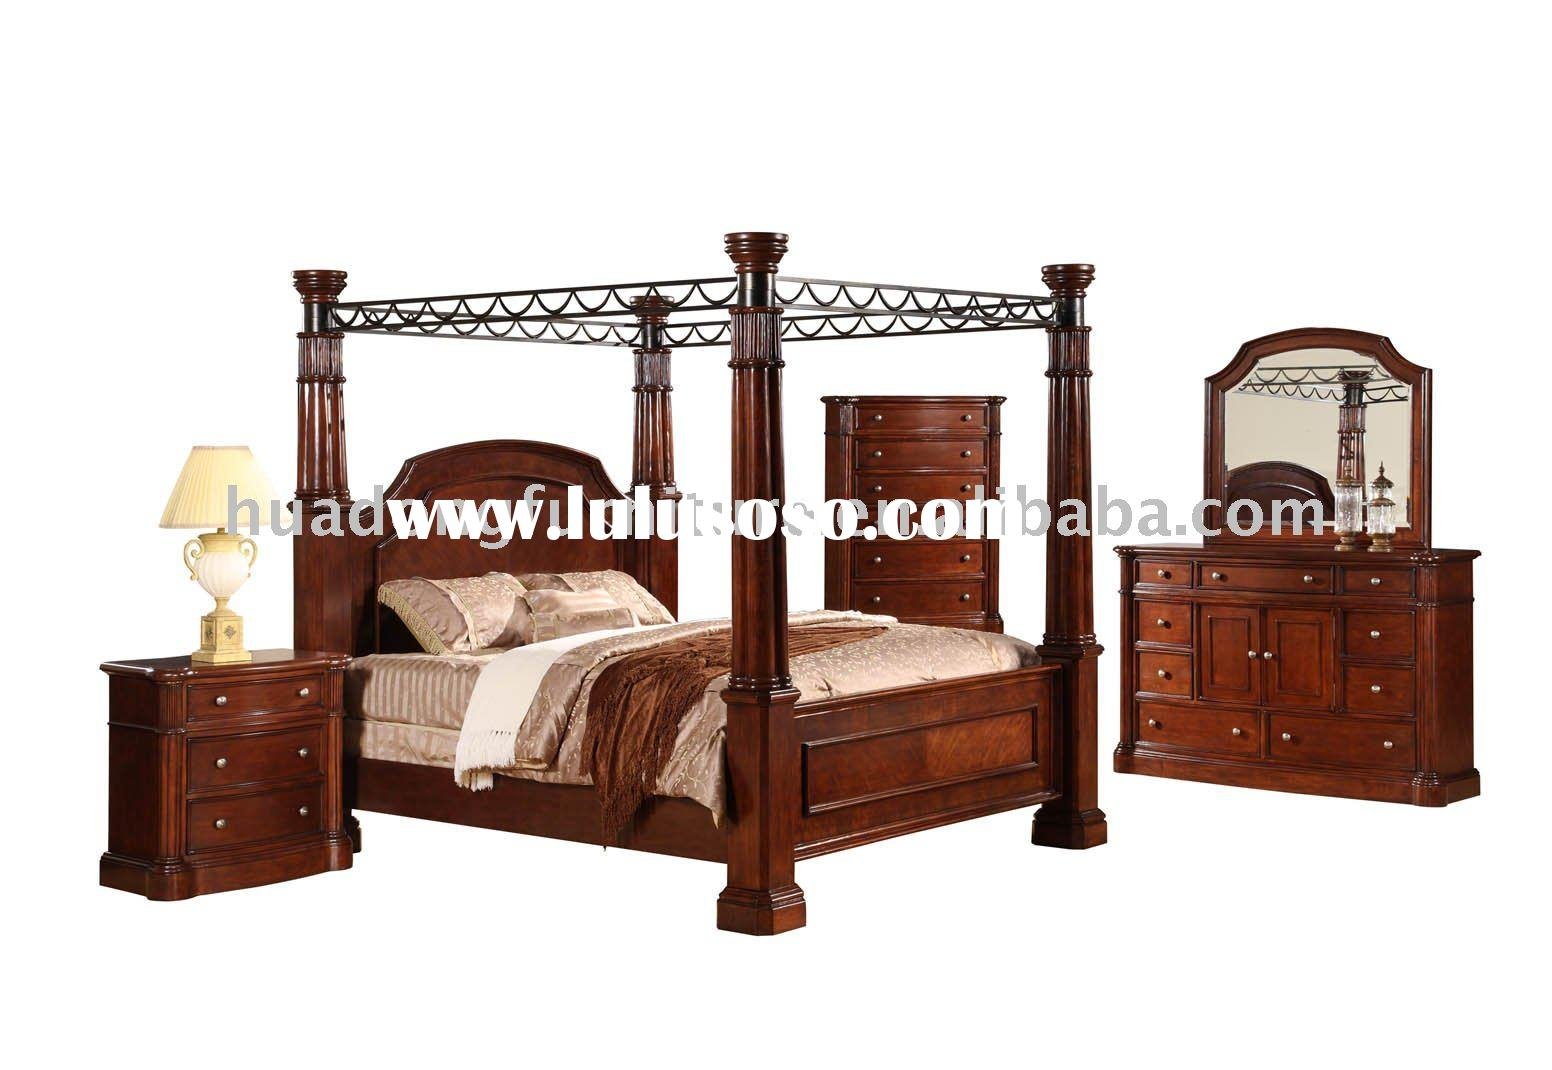 solid wood bedroom furniture at the galleria. Black Bedroom Furniture Sets. Home Design Ideas